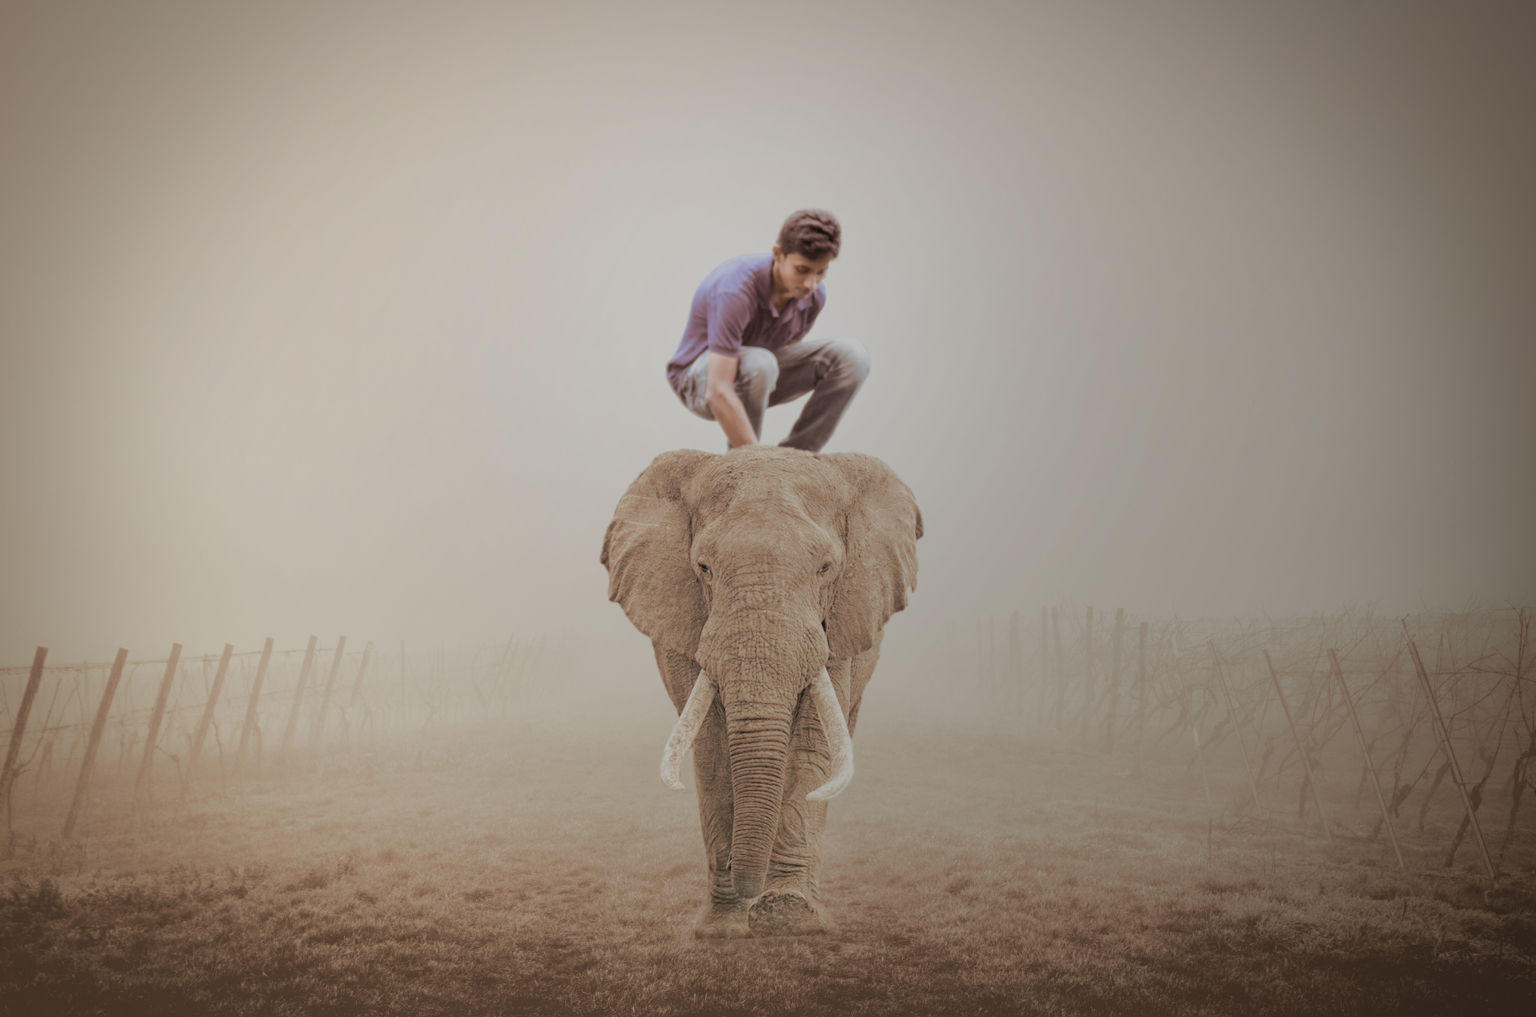 elephent-ride-photo-manipulation